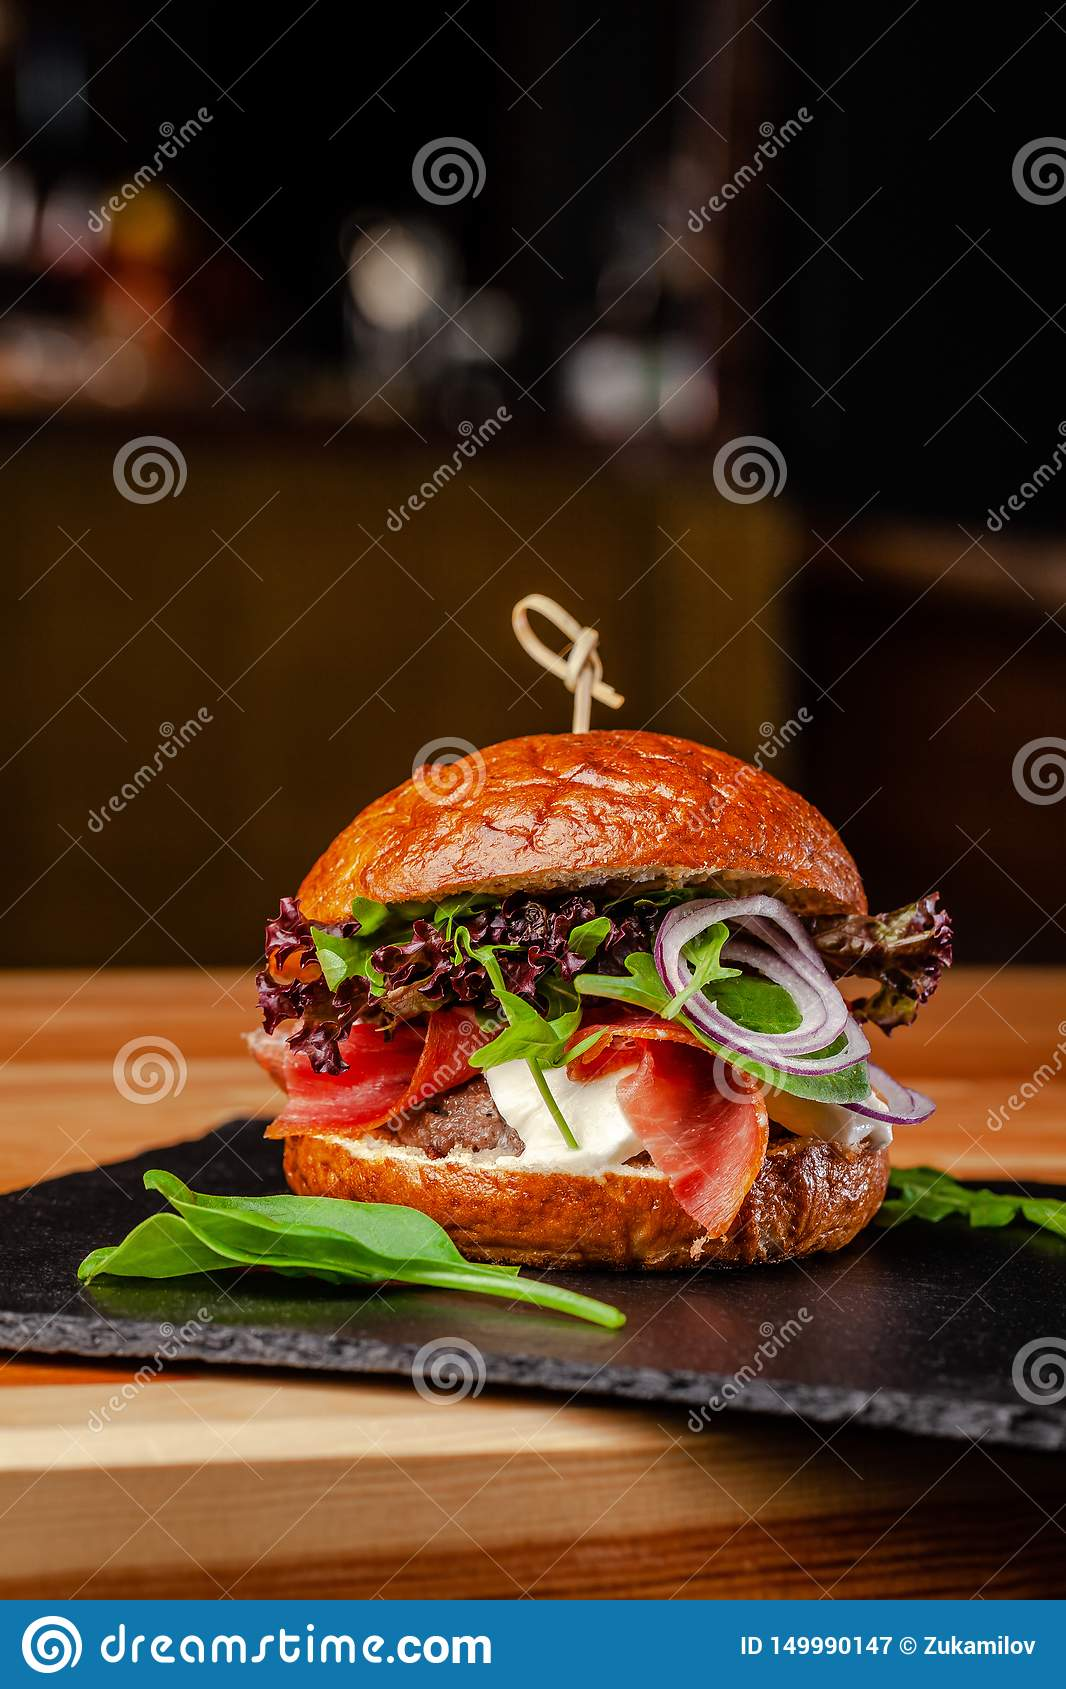 Concept of Italian home cooking. Burger with beef and pork meat cutlet, mozzarella cheese, salami sausage, parma, arugula